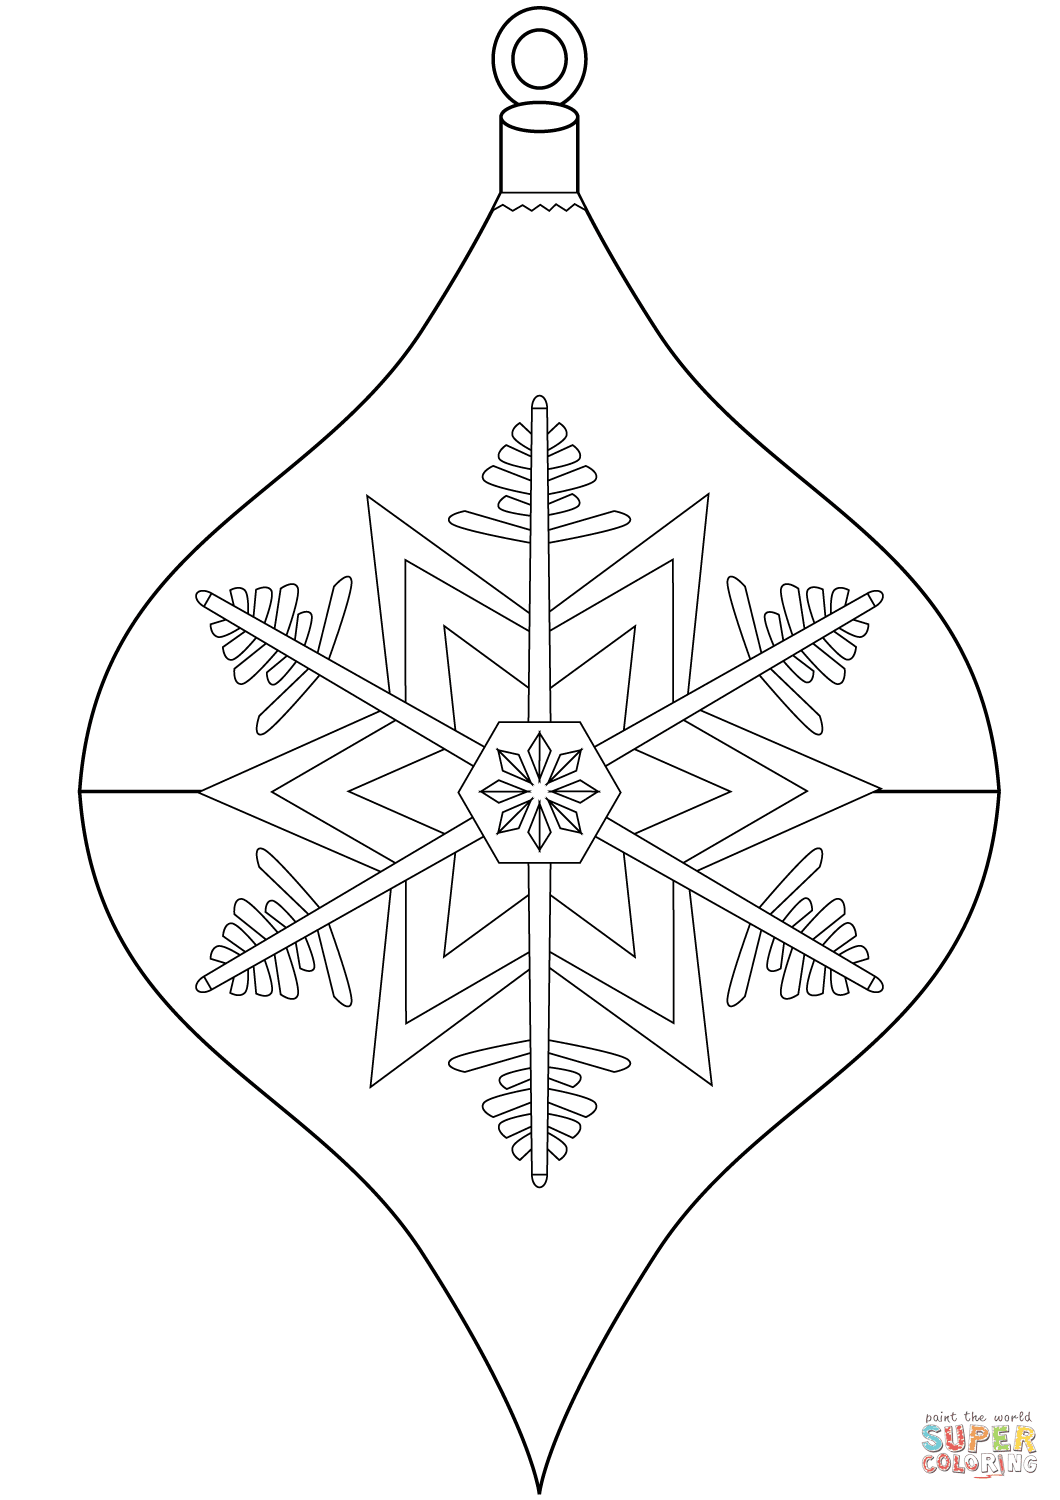 Christmas Ornament coloring page | Free Printable Coloring ...